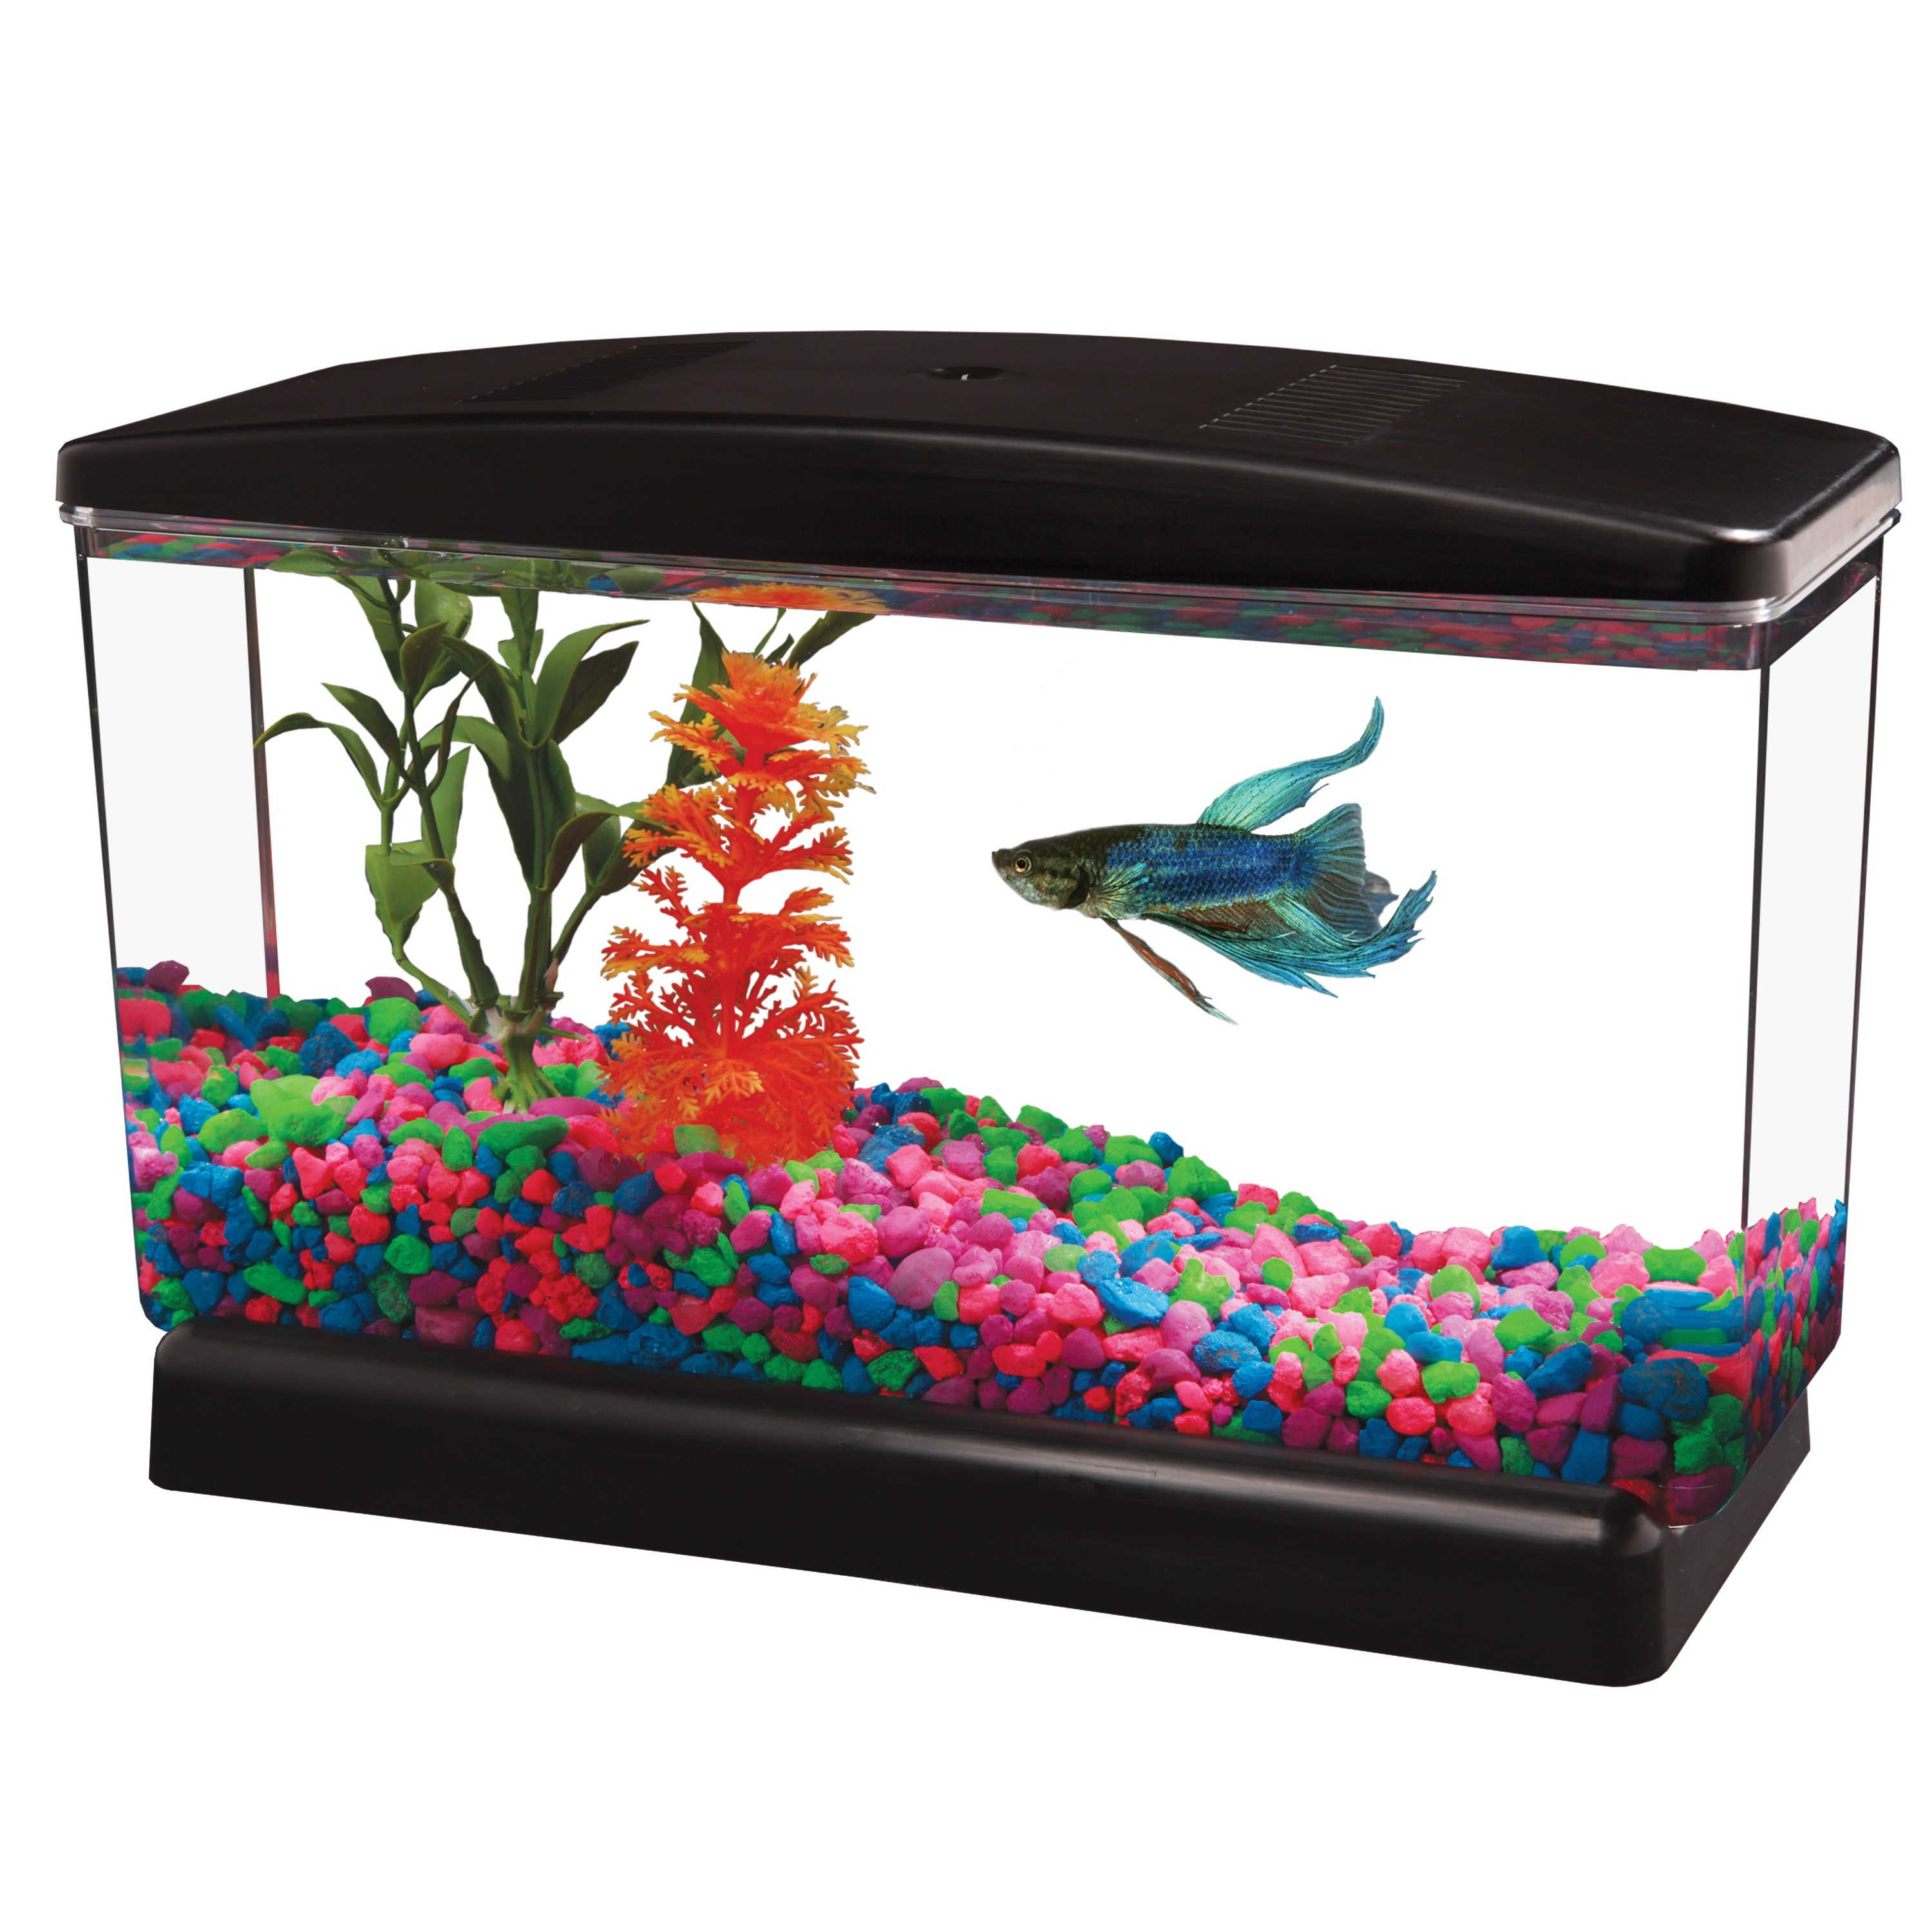 "Aqua Culture BettaView Aquarium .5 Gallon, 9.75""L x 3.80""W x 6.25""H"